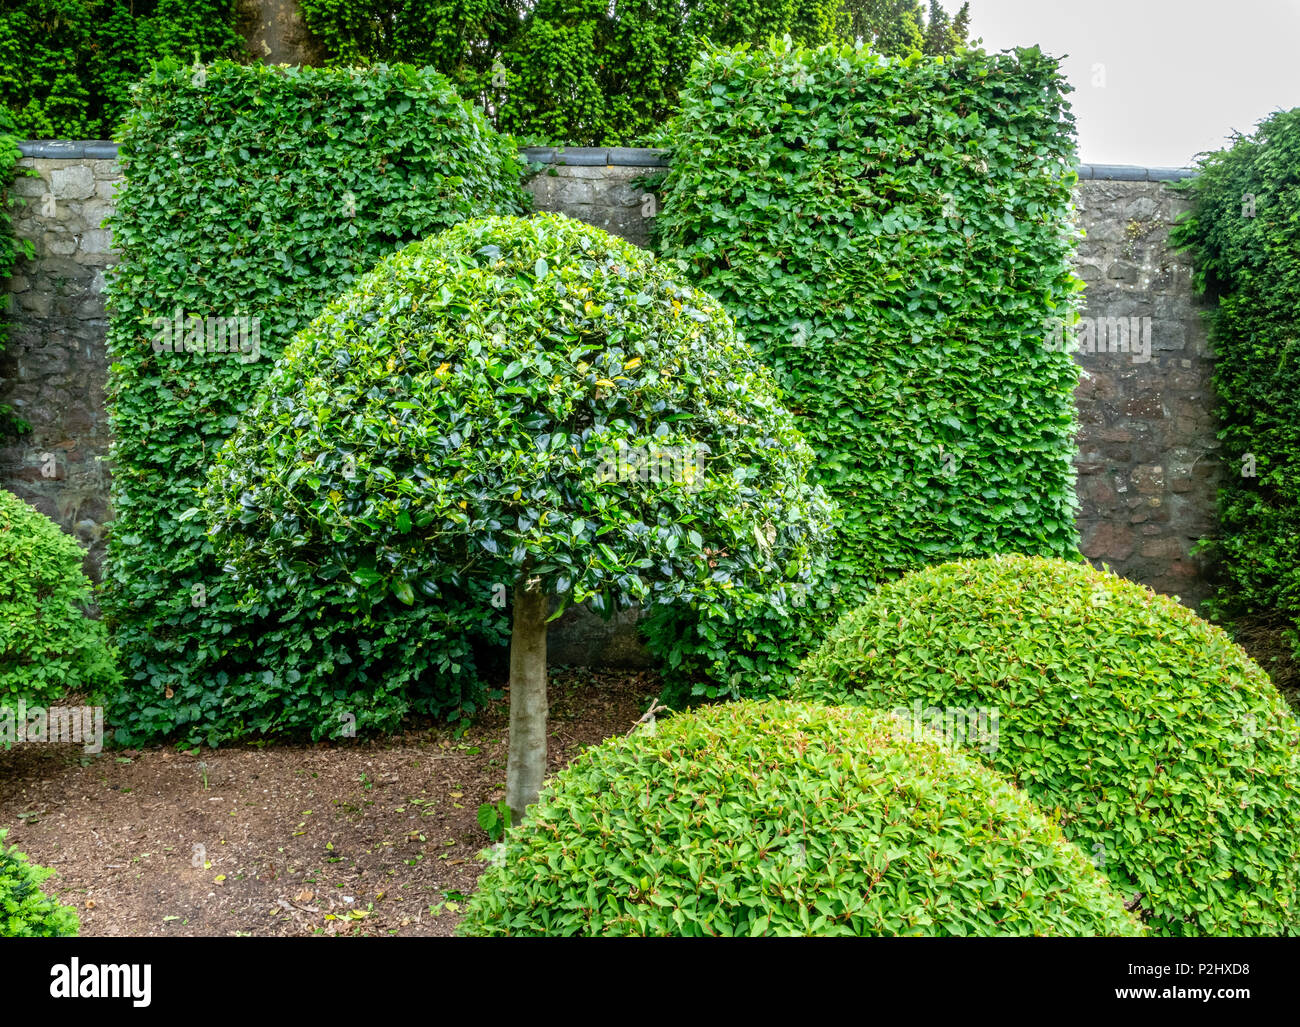 Clever use of sculptural topiary shapes in a domestic garden setting with clipped box and holly Stock Photo